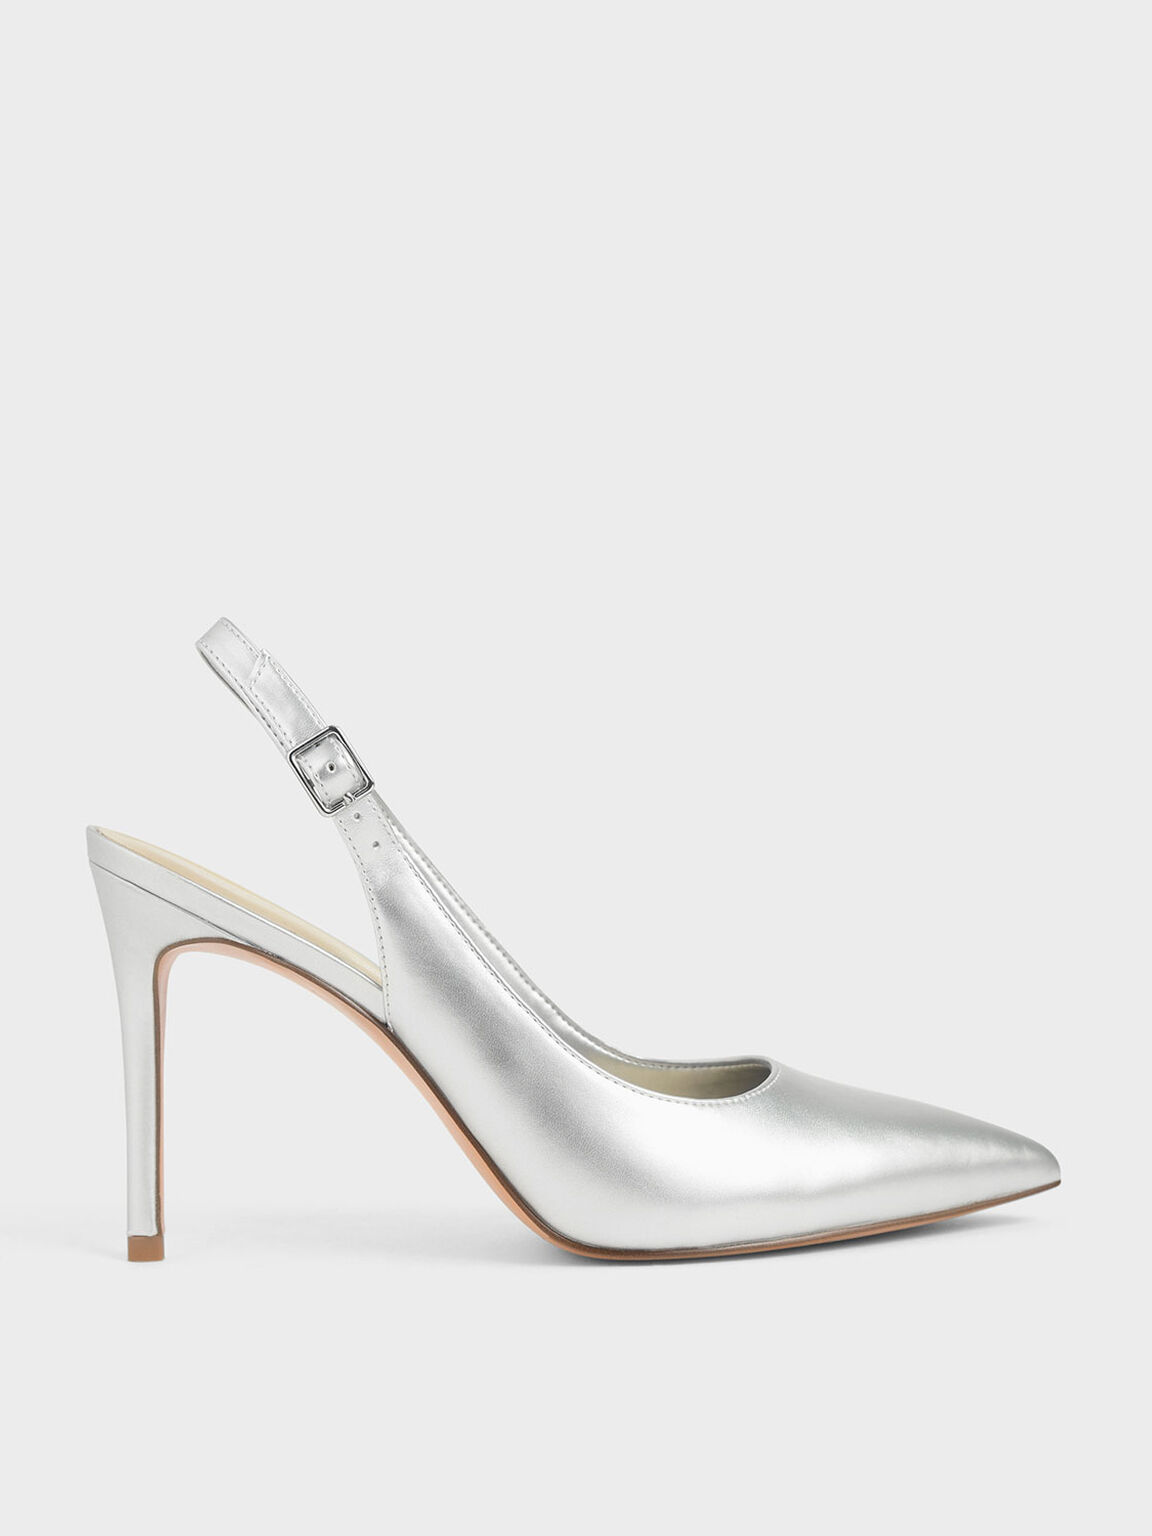 Metallic Stiletto Slingback Pumps, Silver, hi-res